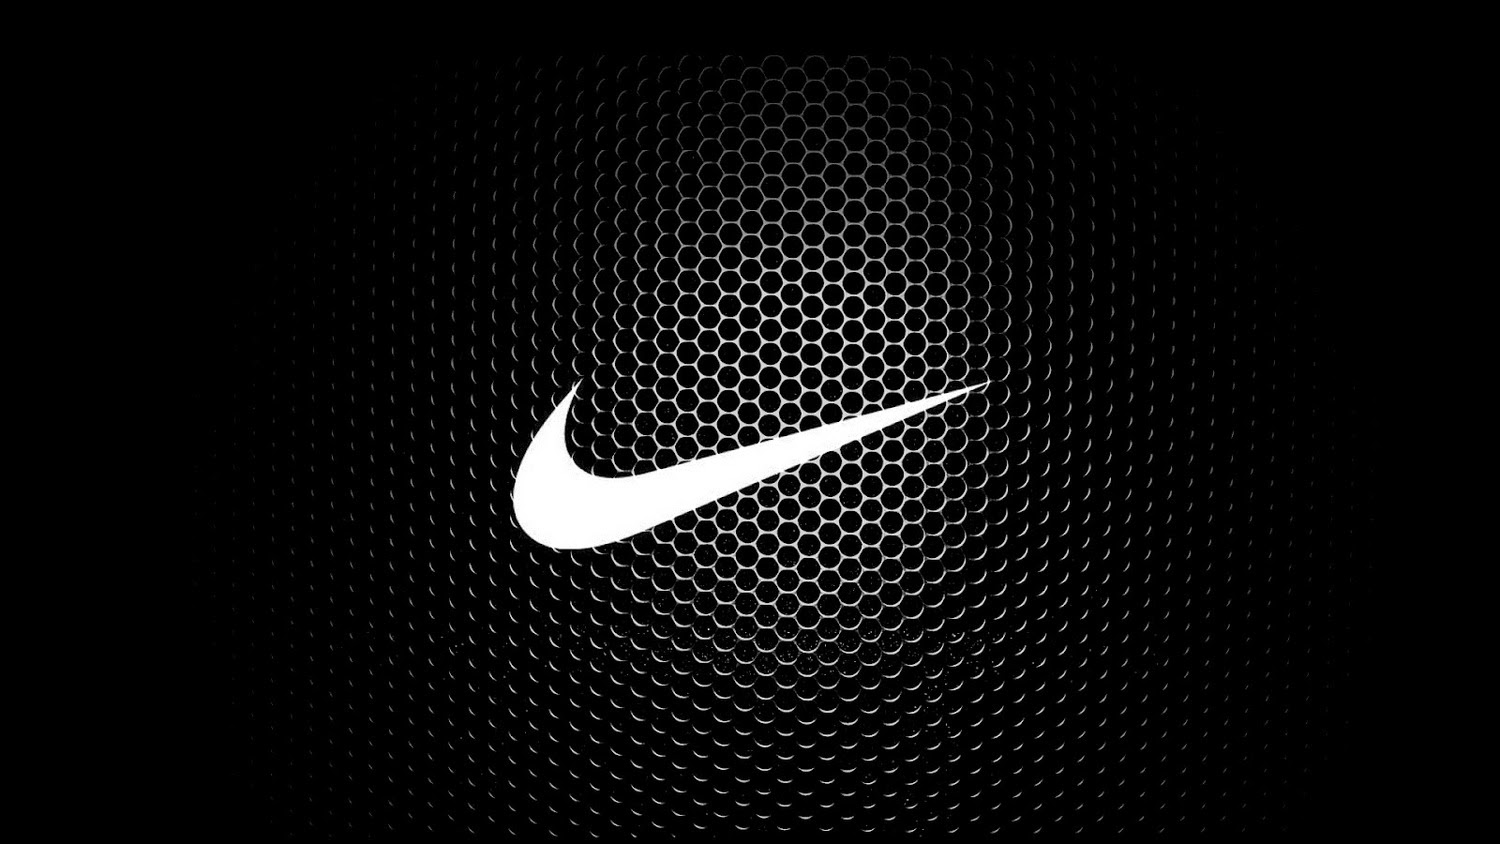 Cool Nike Logos 62 103079 Images HD Wallpapers Wallfoycom ...